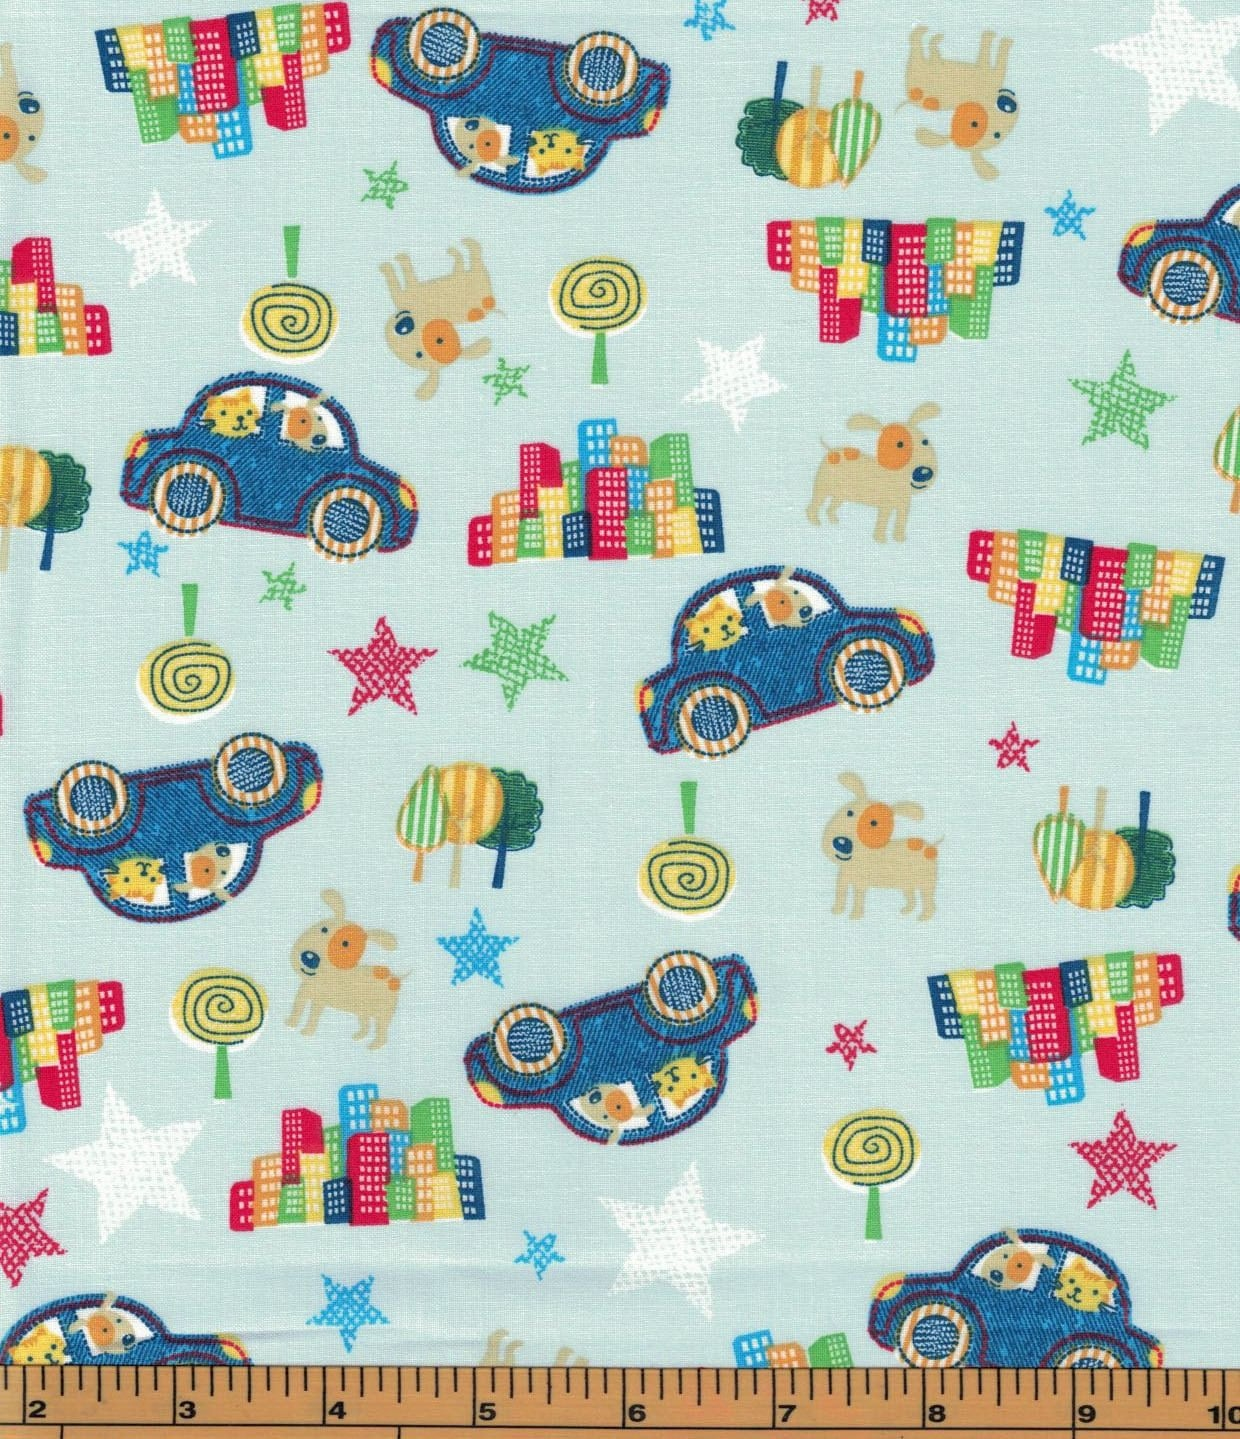 City dogs cats urban zoo collection by galaxy fabrics for Galaxy fabric canada